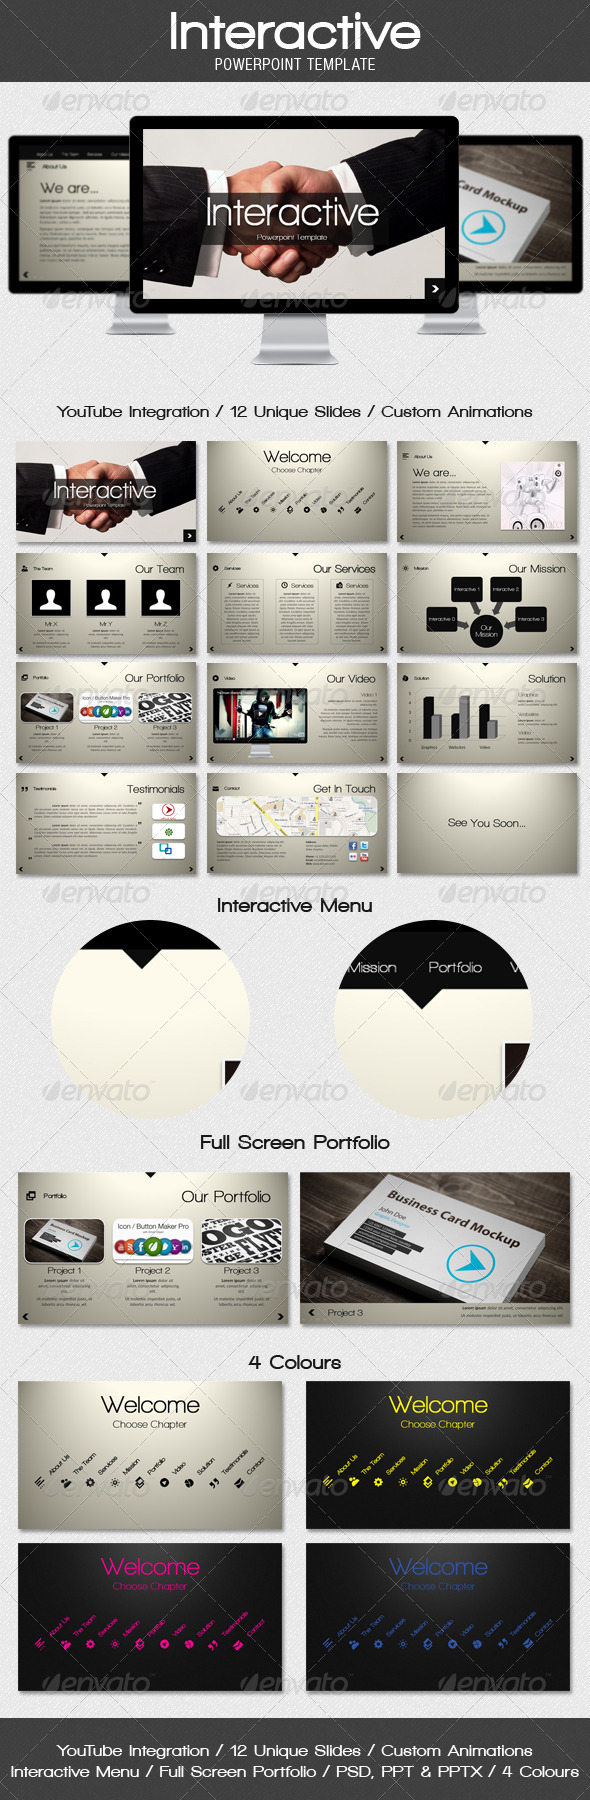 interactive - powerpoint template | template, keynote and ppt design, Interactive Presentation Template, Presentation templates